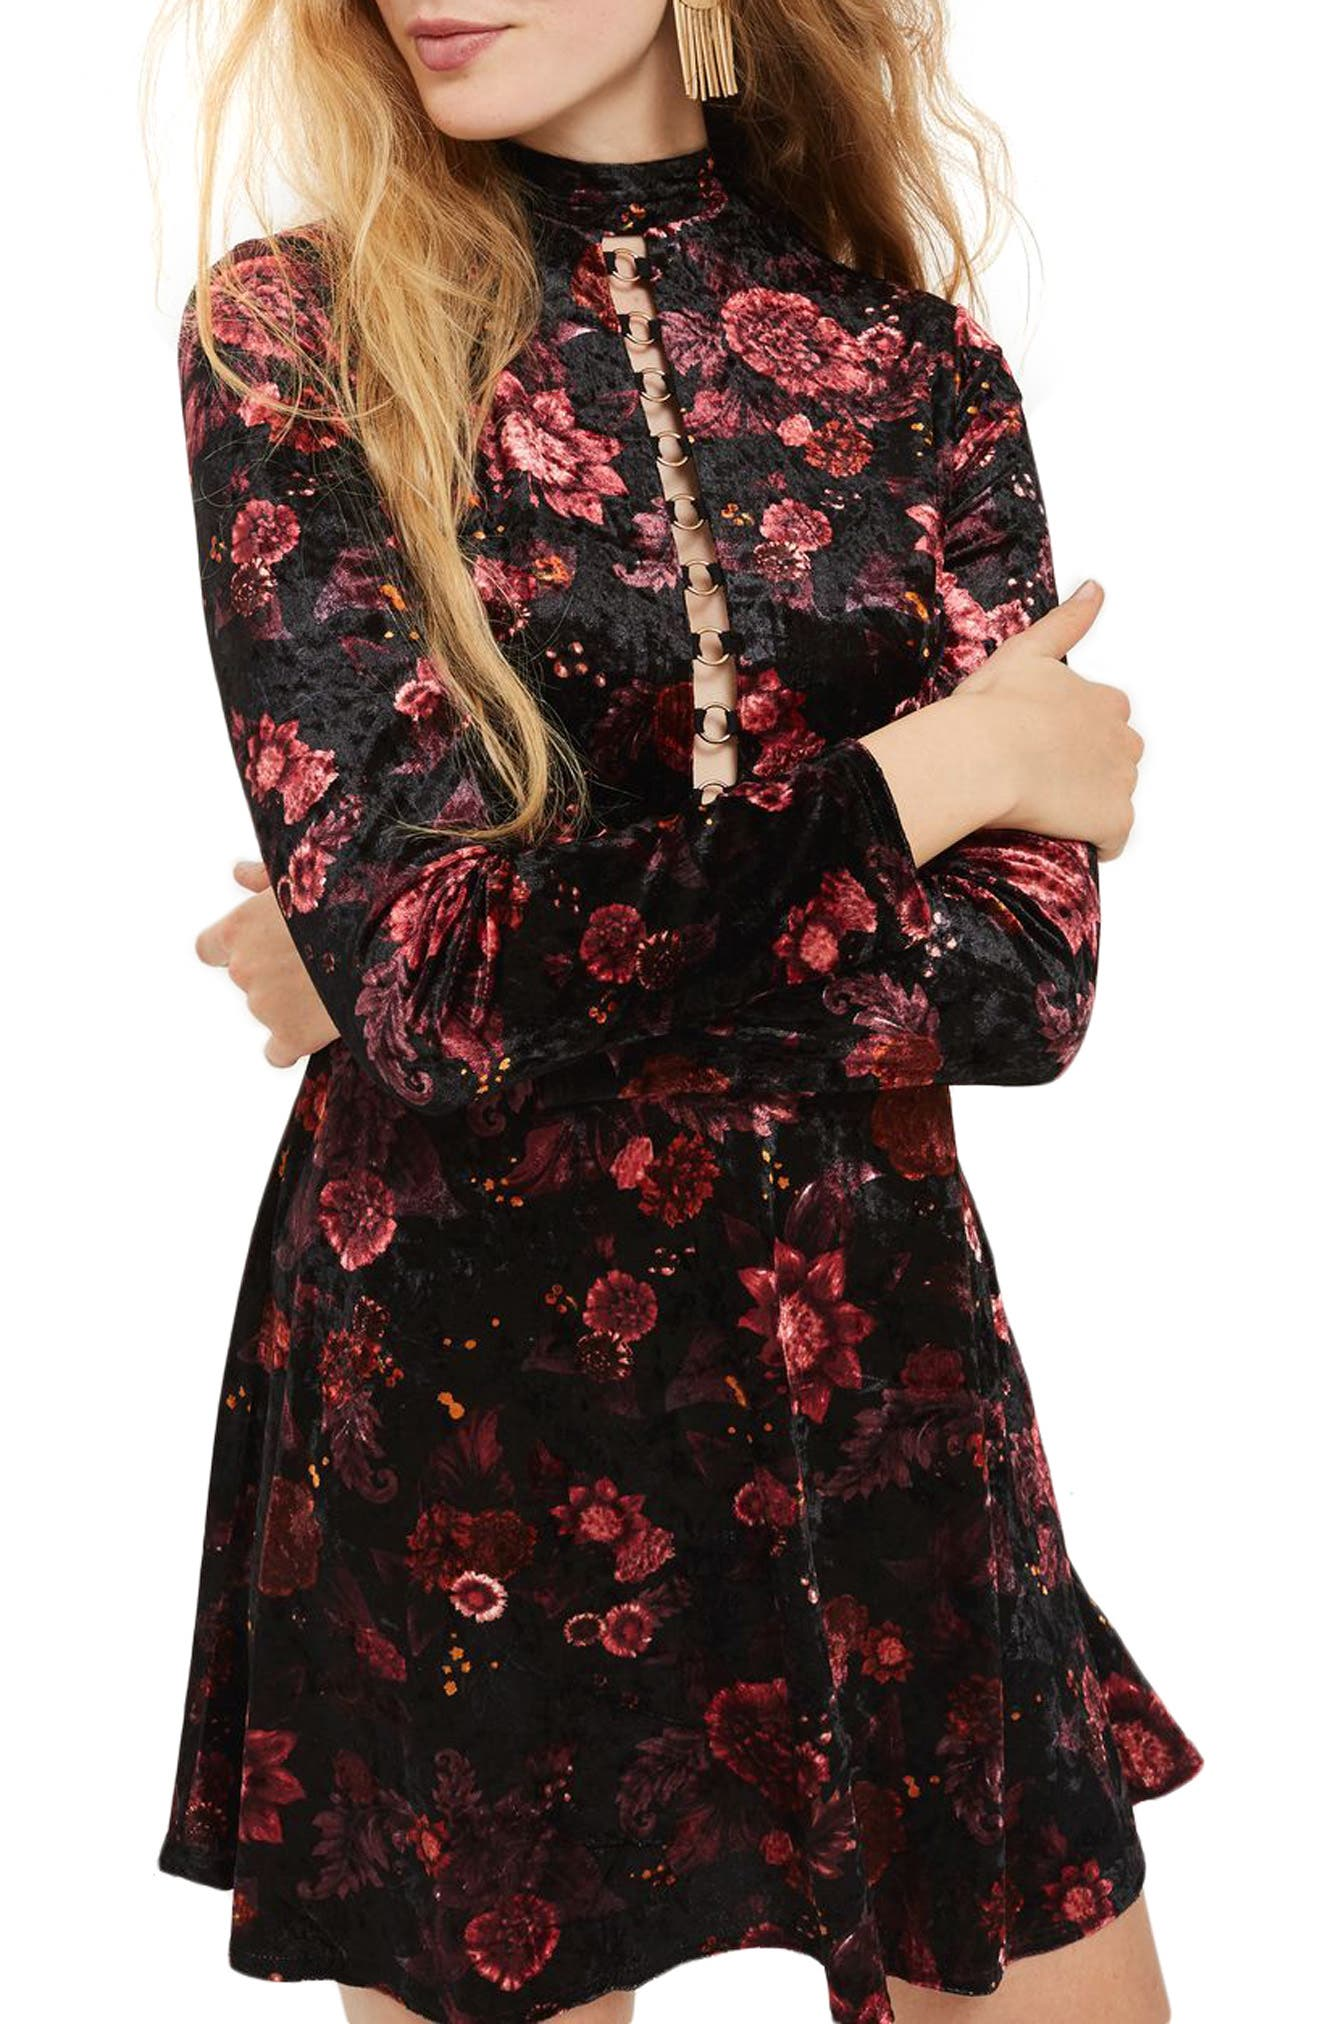 Ring Lace Up Floral Velvet Skater Dress,                         Main,                         color, 001